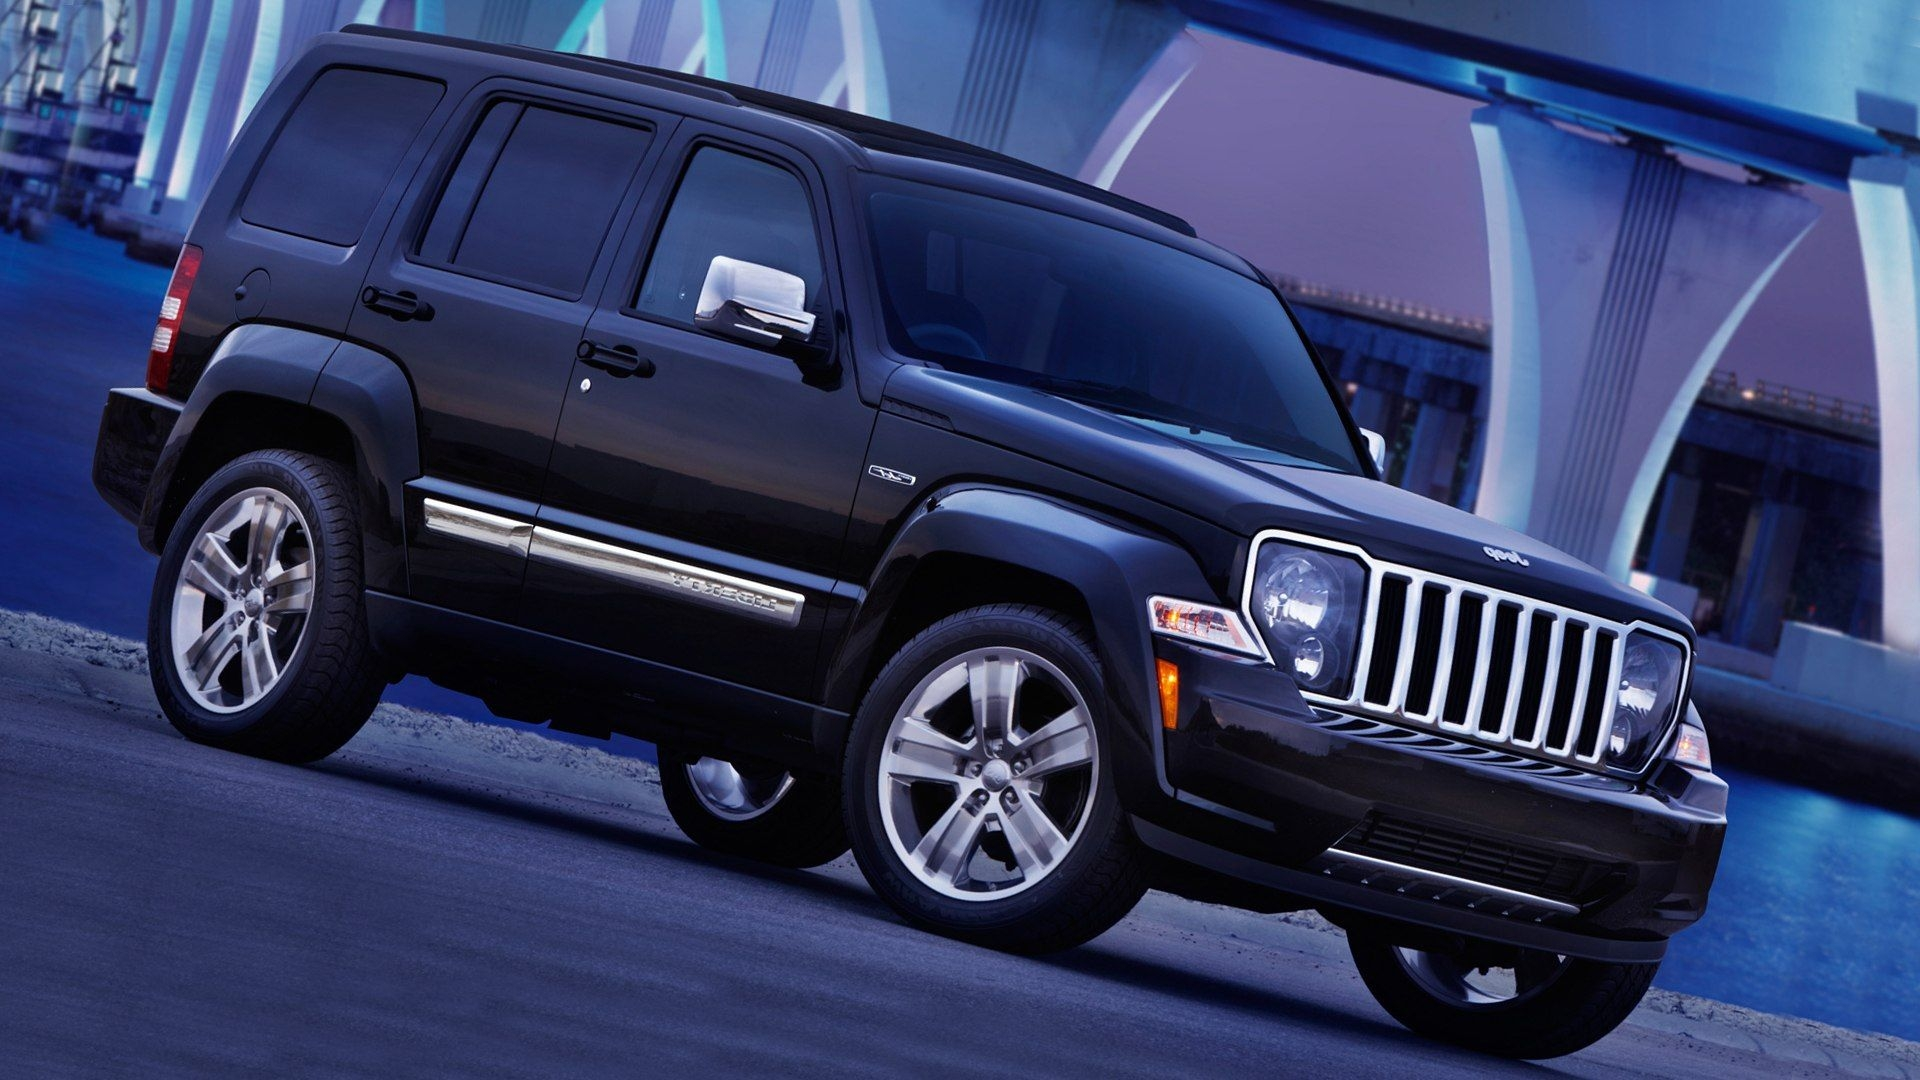 60 New 2020 Jeep Liberty Release Date and Concept